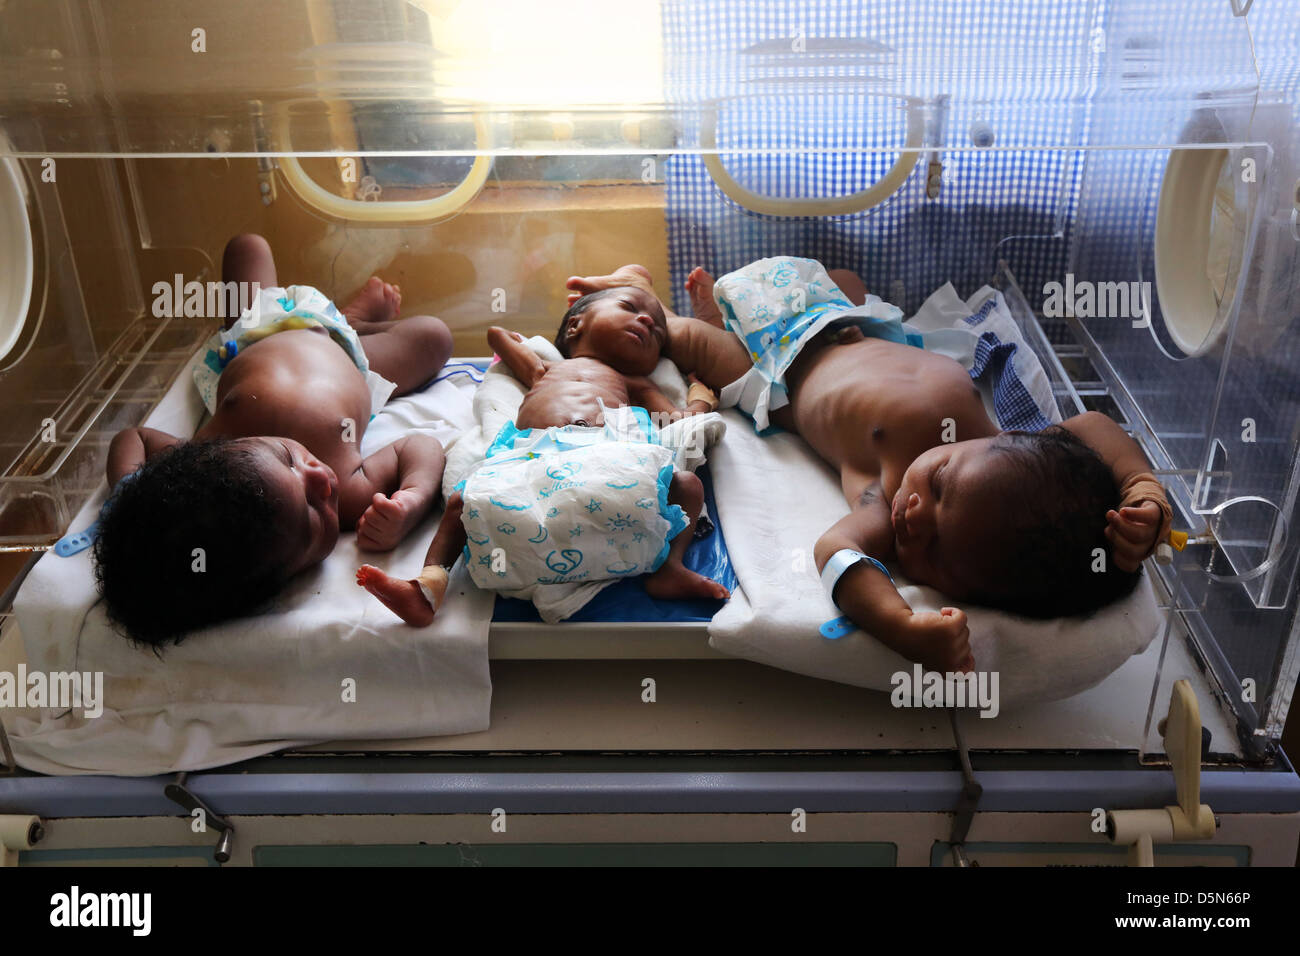 Baby cribs in ghana -  Newborn Premature Babies In The Maternity Area Of The Holy Family Hospital In Techiman Ghana